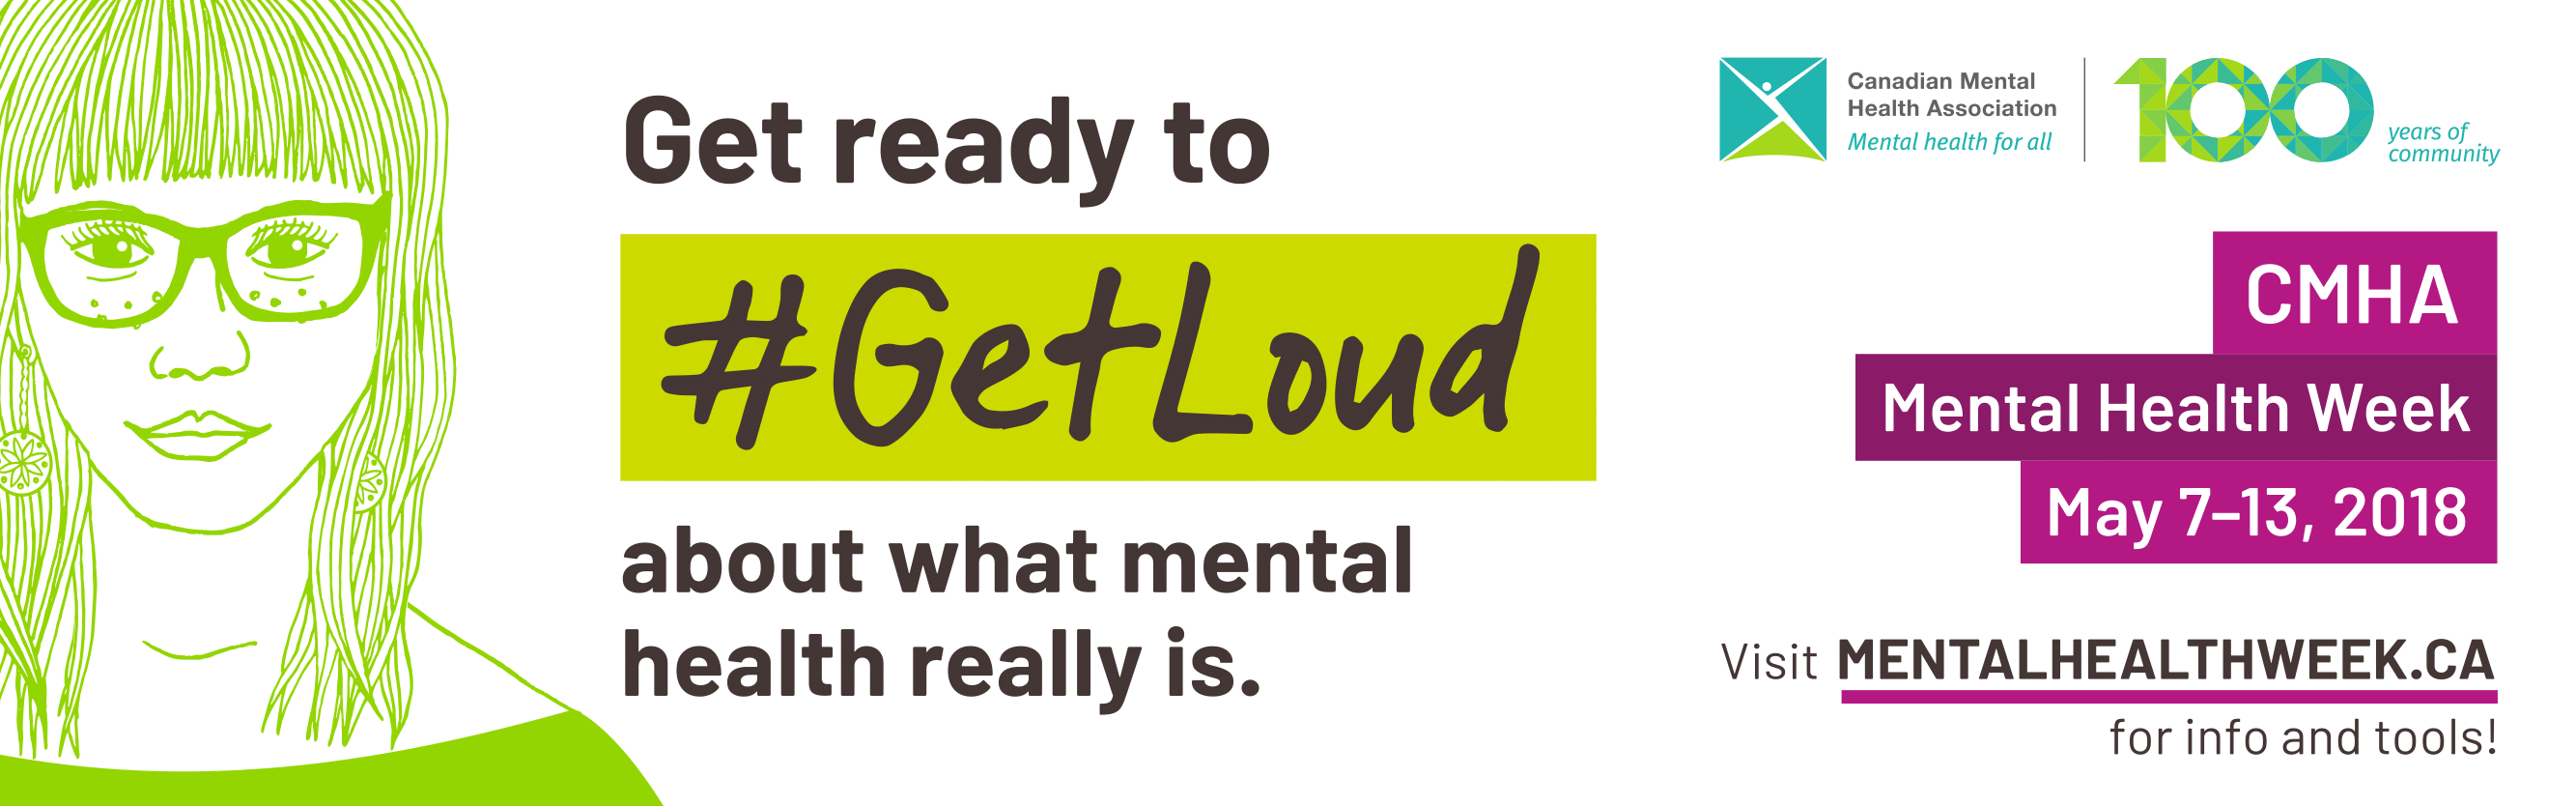 Get ready to #GetLoud for Mental Health Week - May 7-13